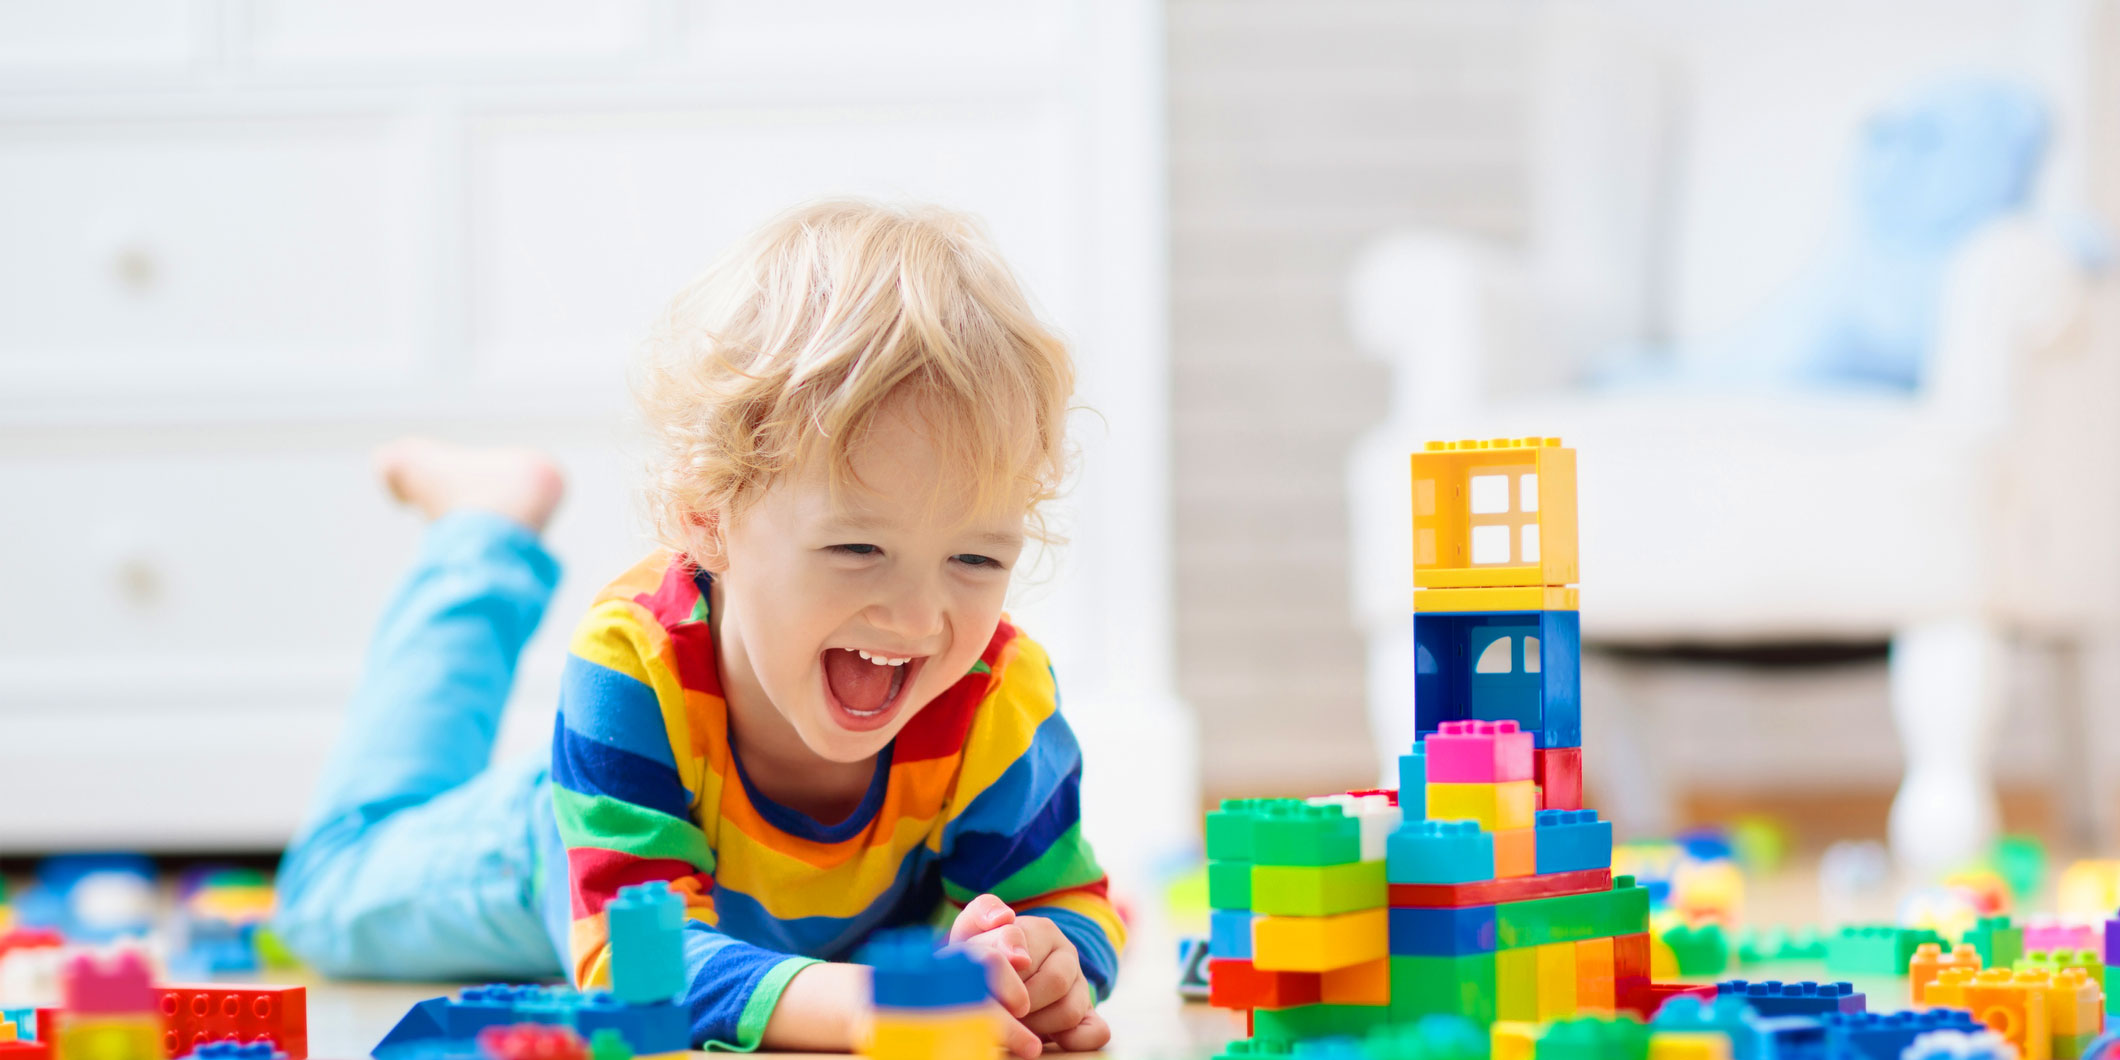 Young child smiling and laughing on the floor with colorful building blocks.